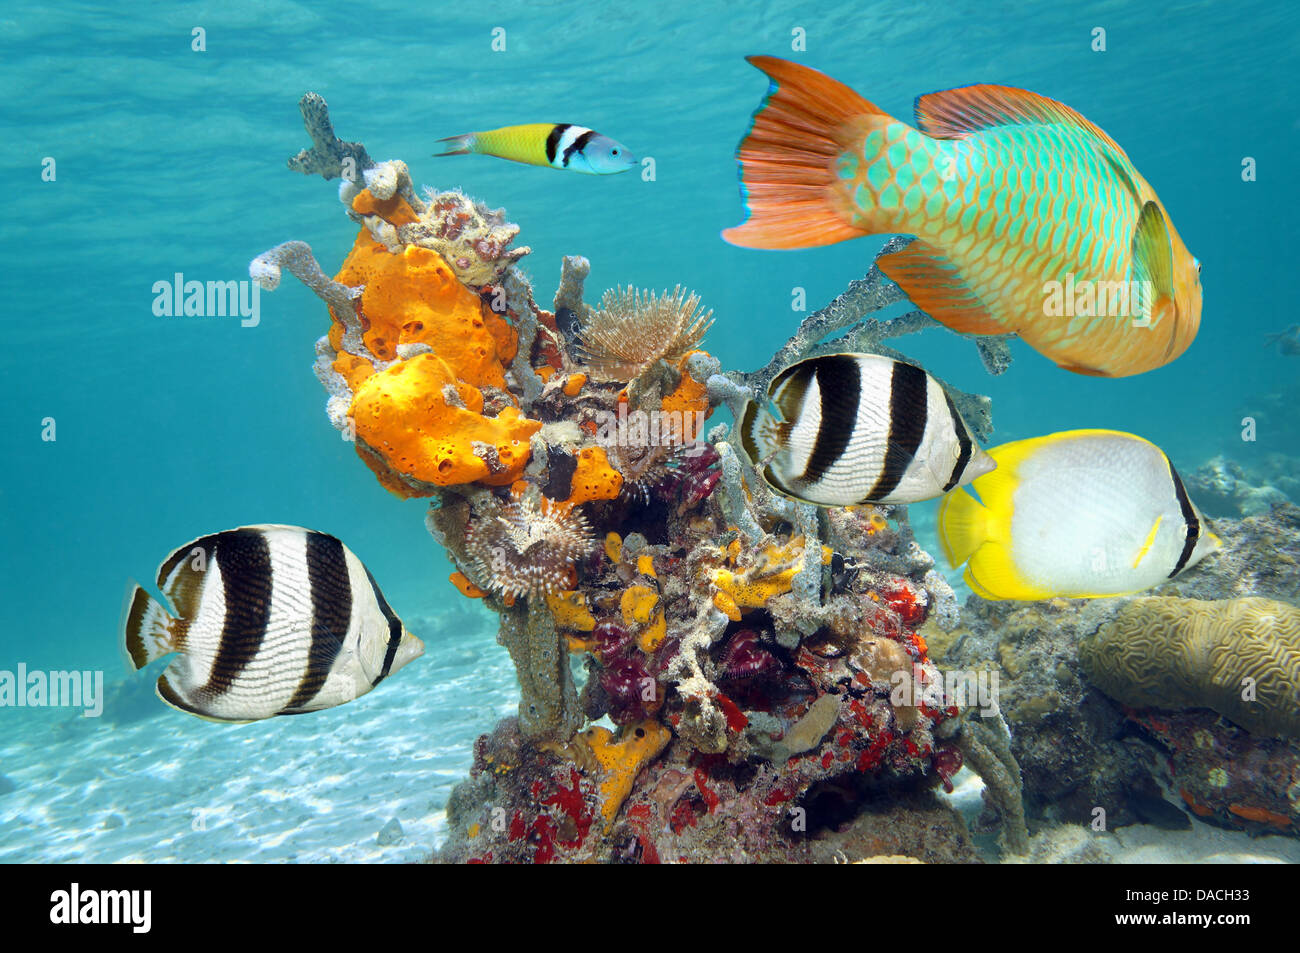 Vibrant colors of marine life in a coral reef with colorful fish, sea sponges and tube worms - Stock Image